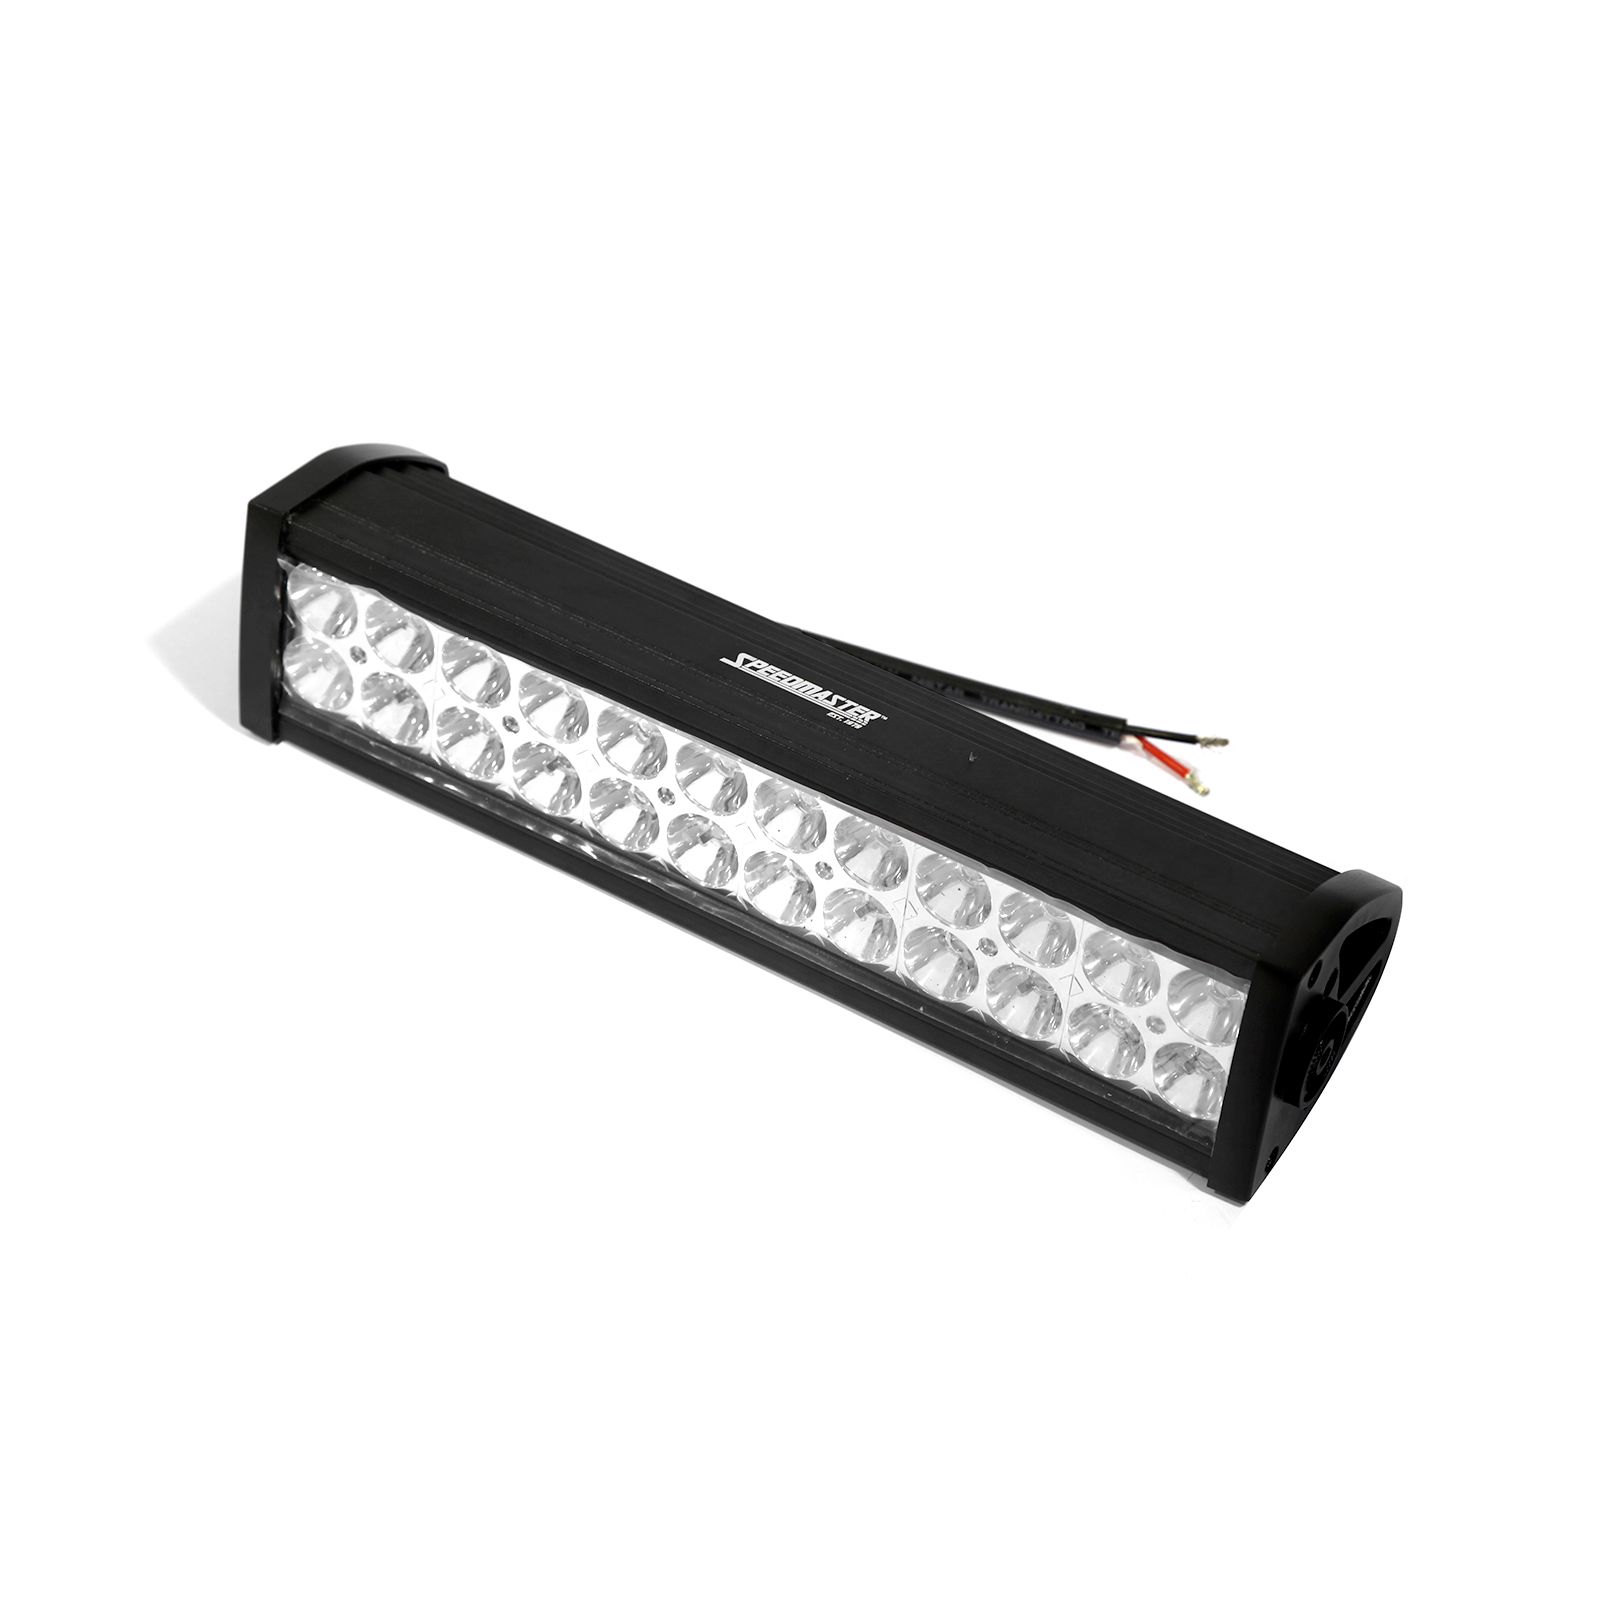 "12"" 72W LED Work Light Bar Offroad Driving Lamp SUV Car Boat 4WD"